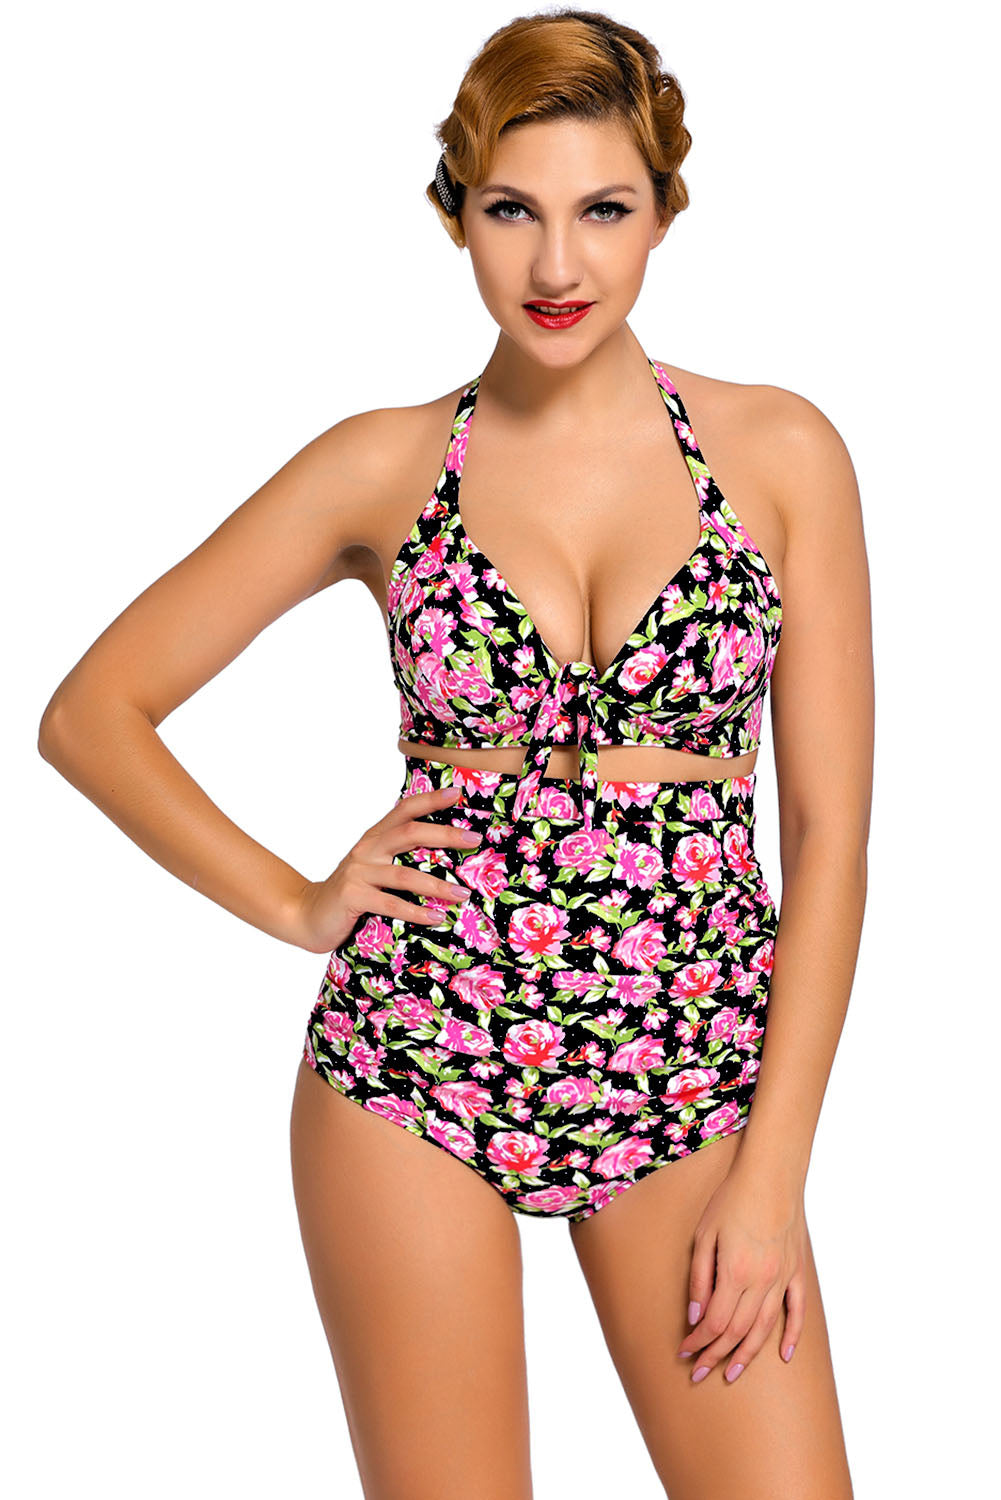 adb9943dc9933 Sexy Floral Print Black Retro High Waist 2 Pieces Swimsuit – SEXY  AFFORDABLE CLOTHING